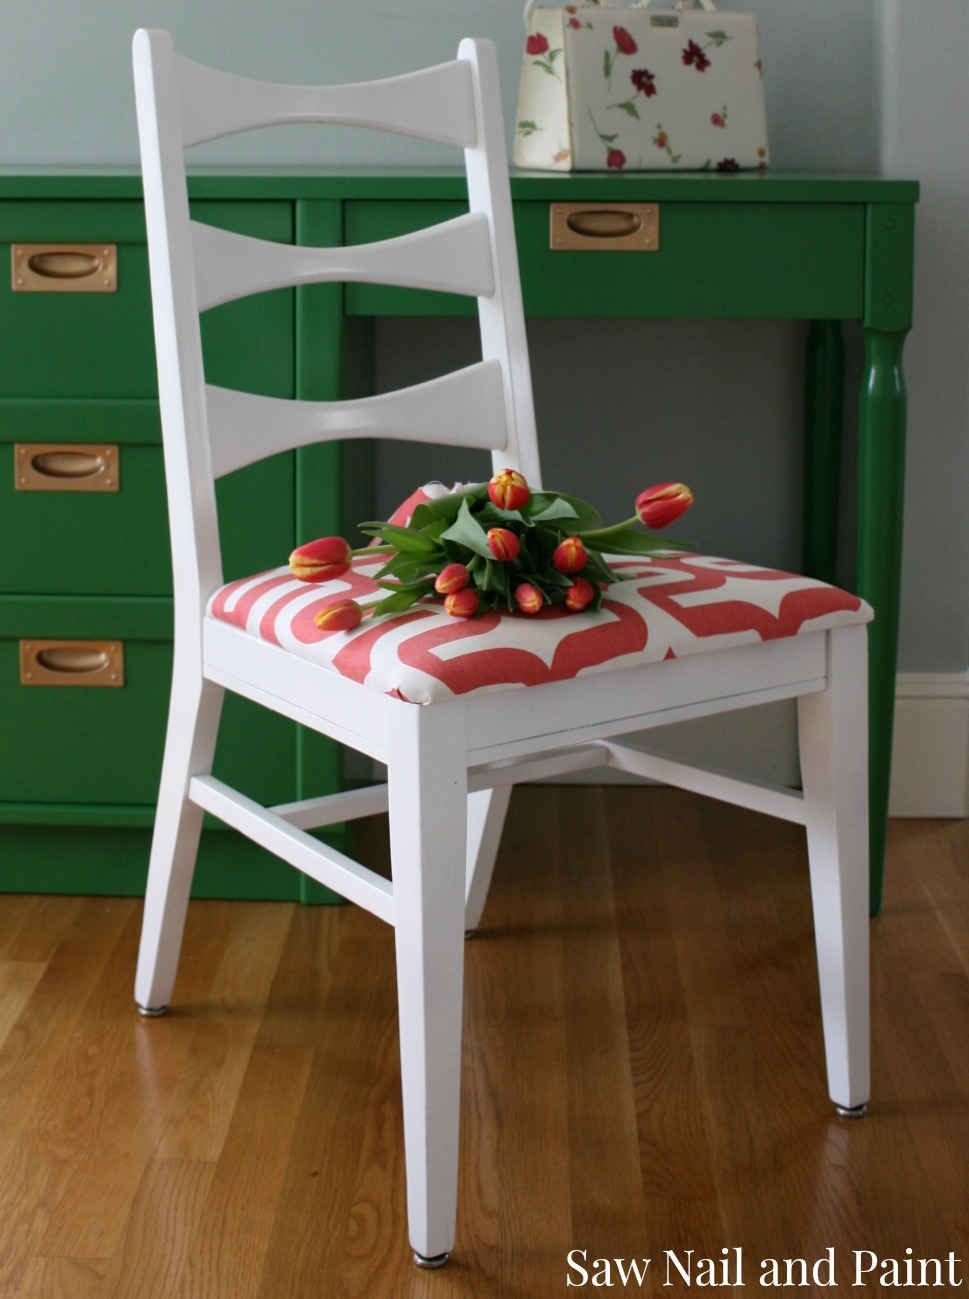 Kelly Green And Coral Mid Century Desk And Chair Saw